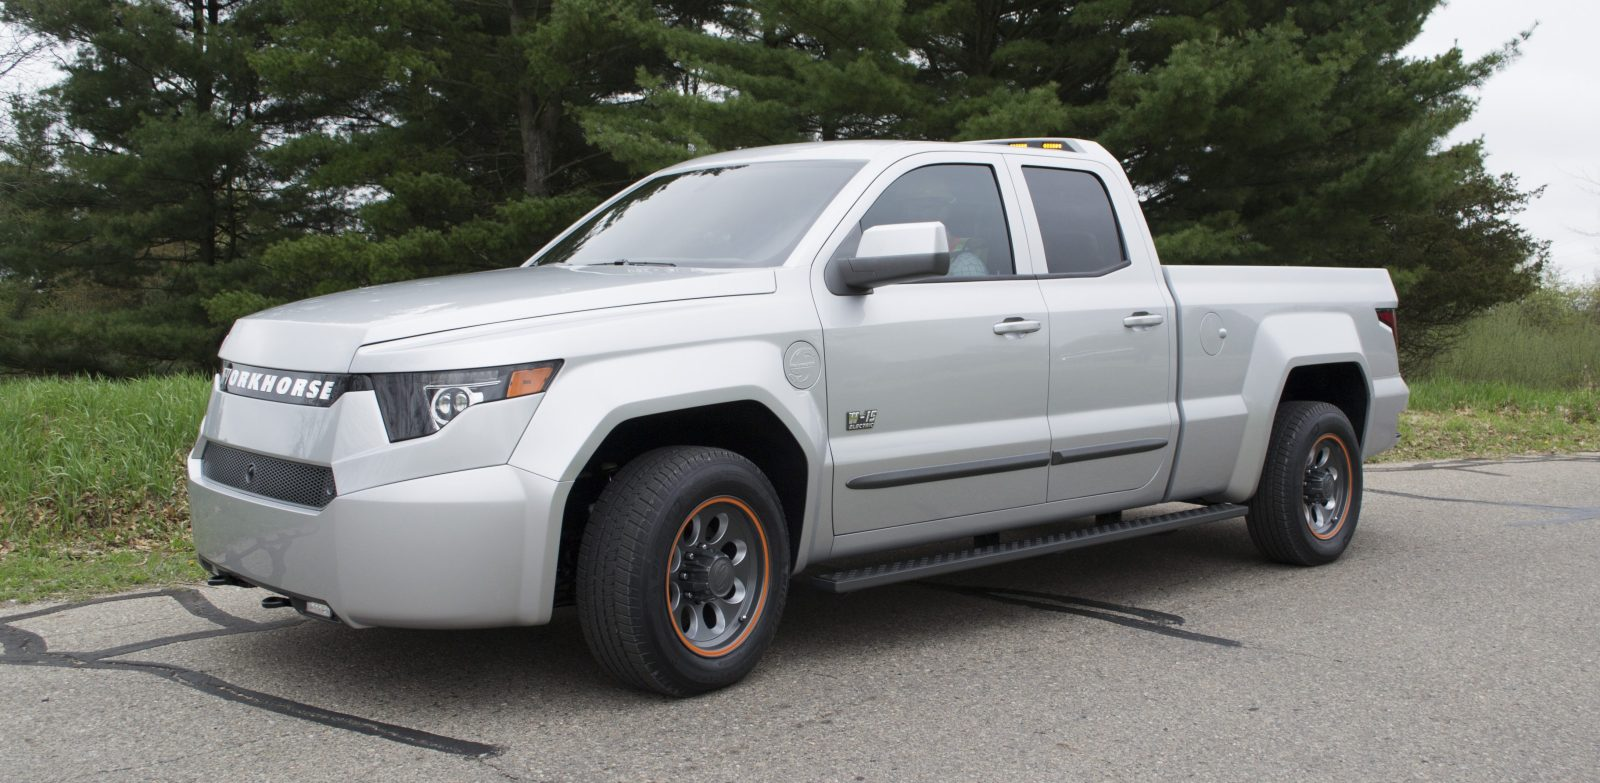 A 52 000 Plug In Electric Pickup Truck W Range Extender Receives Over 5 Fleet Orders Opens Reservation To The Public